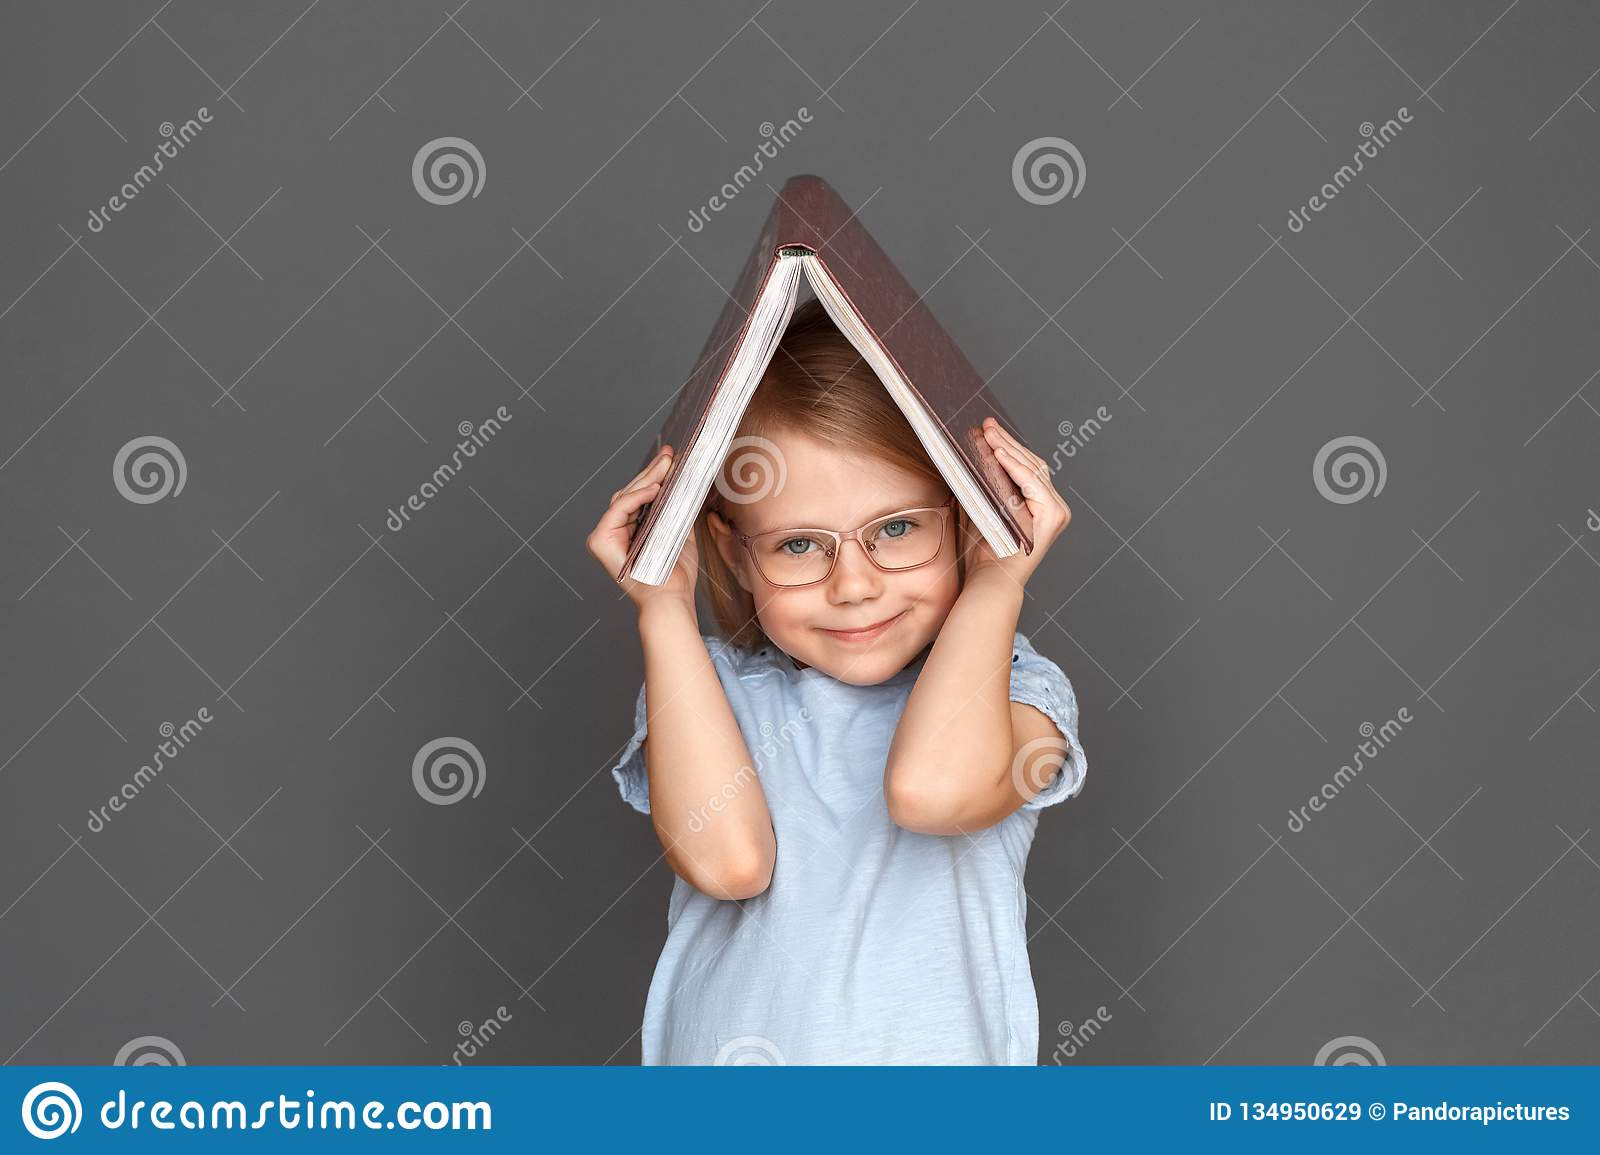 Freestyle. Little girl in eyeglasses on grey hiding under book smiling cute